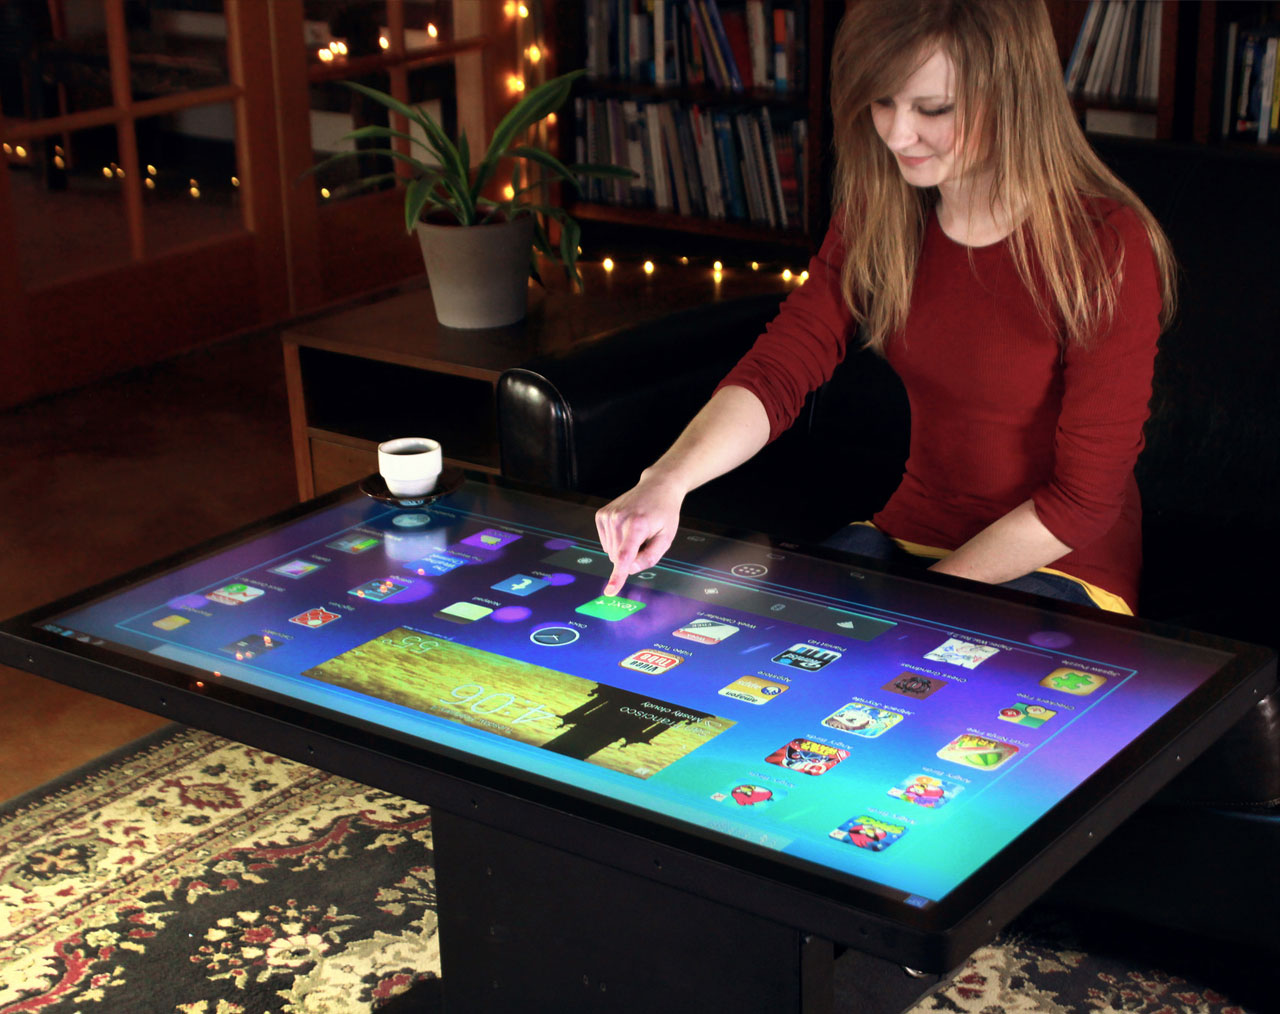 Image for the post: 'Multitouch Coffee Tables Now Shipping'